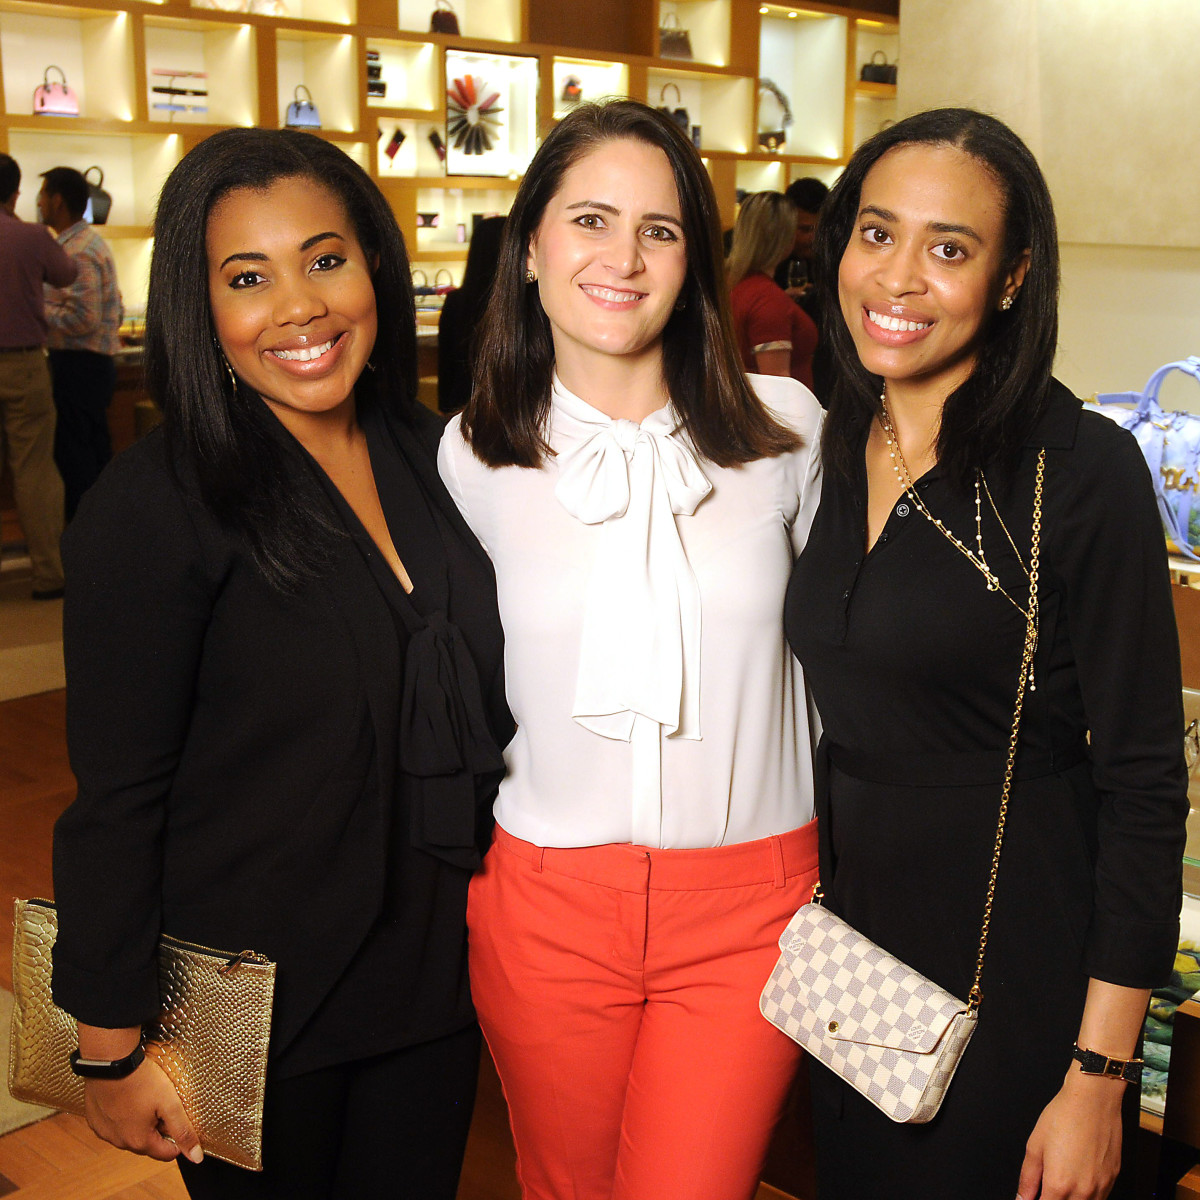 Houston, Louis Vuitton Tambour Horizon launch party, July 2017, Ashley Seals, Holly Grice, Hannah Thibodeaux